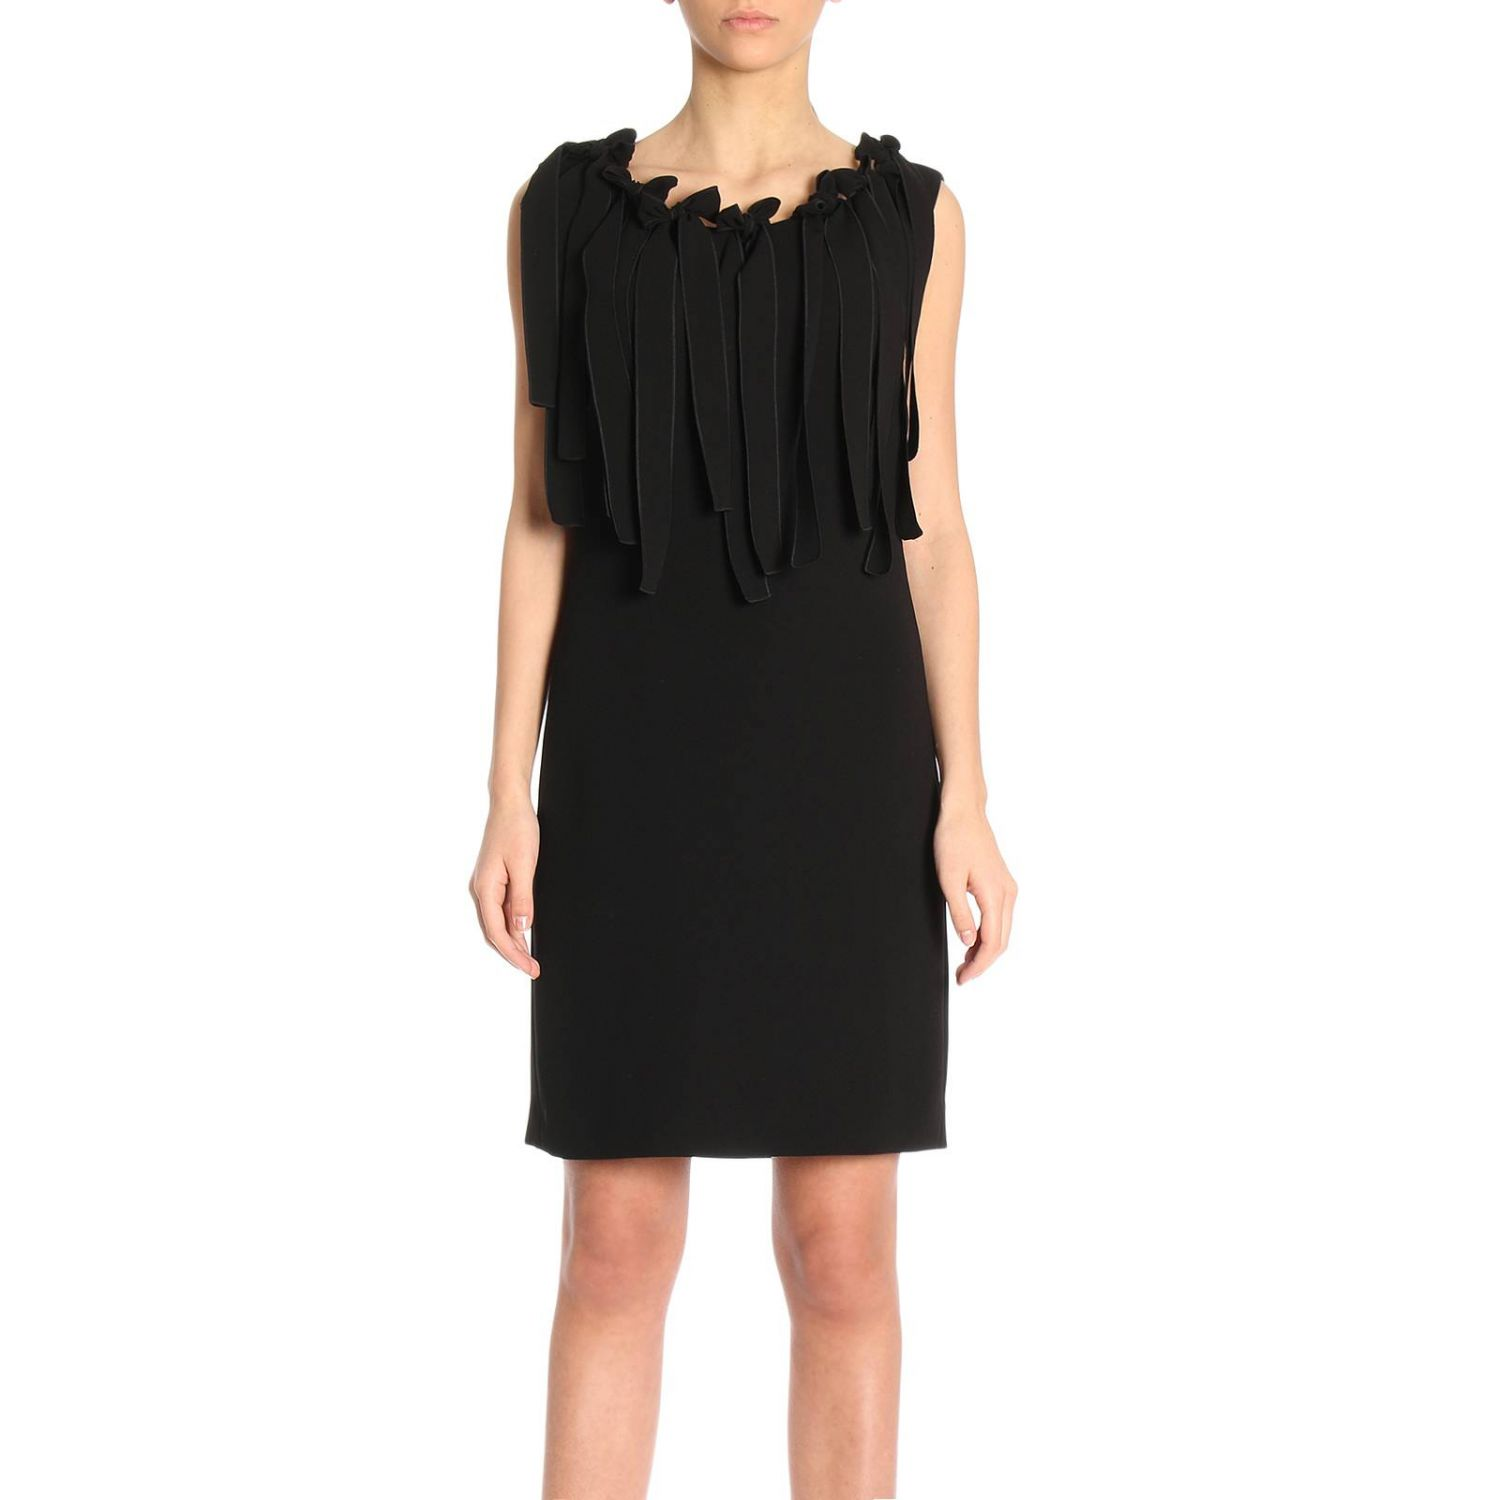 Dress Dress Women Boutique Moschino 8293897